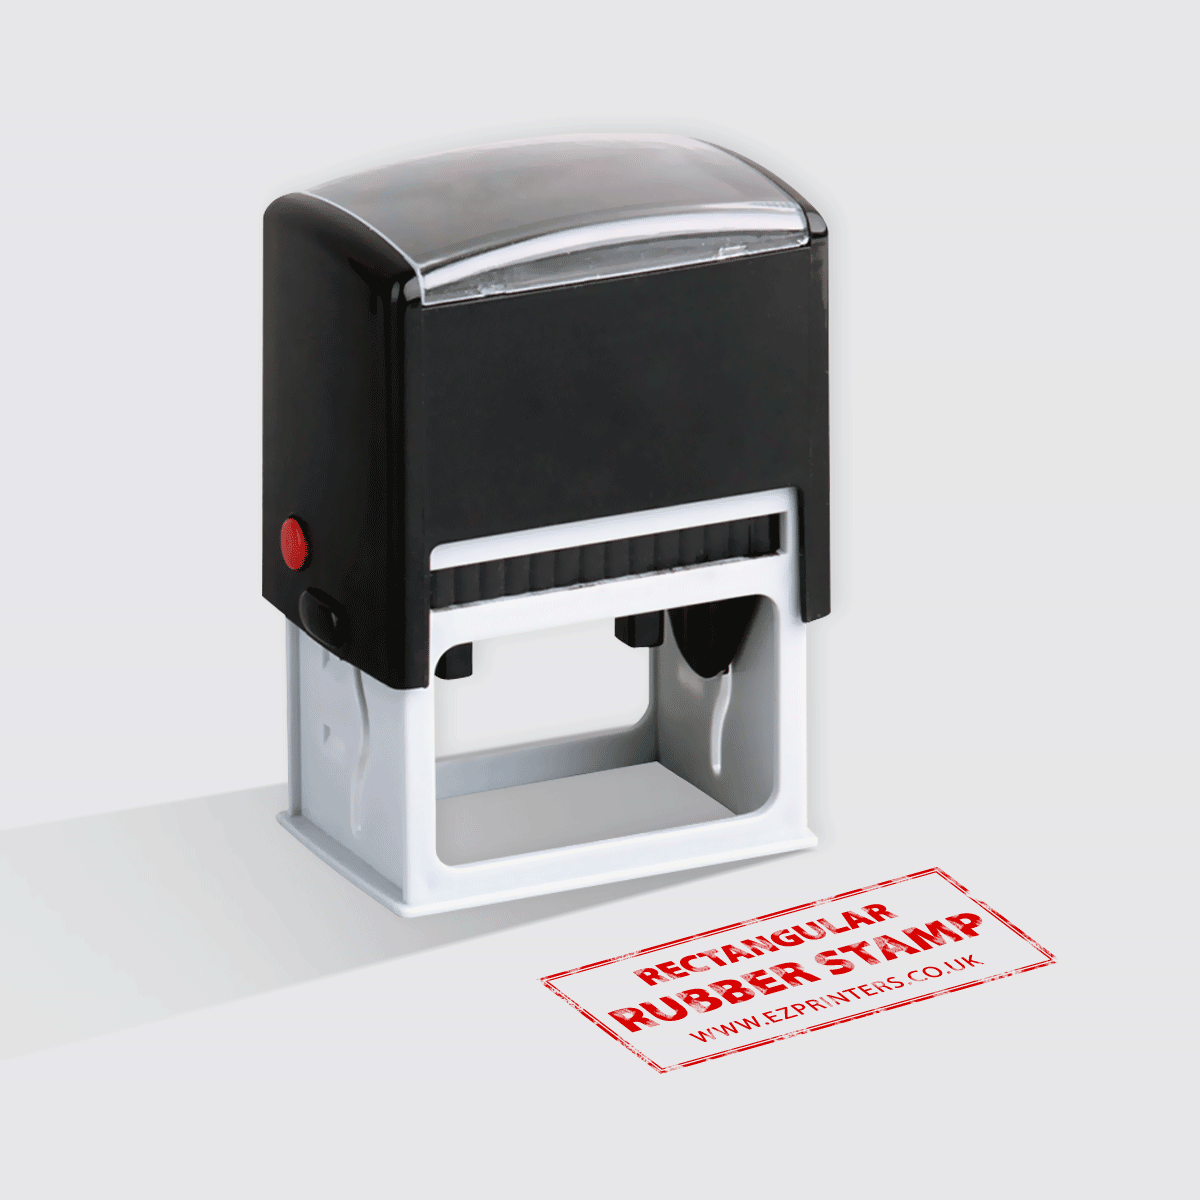 Self Inking Stamps Rubber Stamps Ez Printers